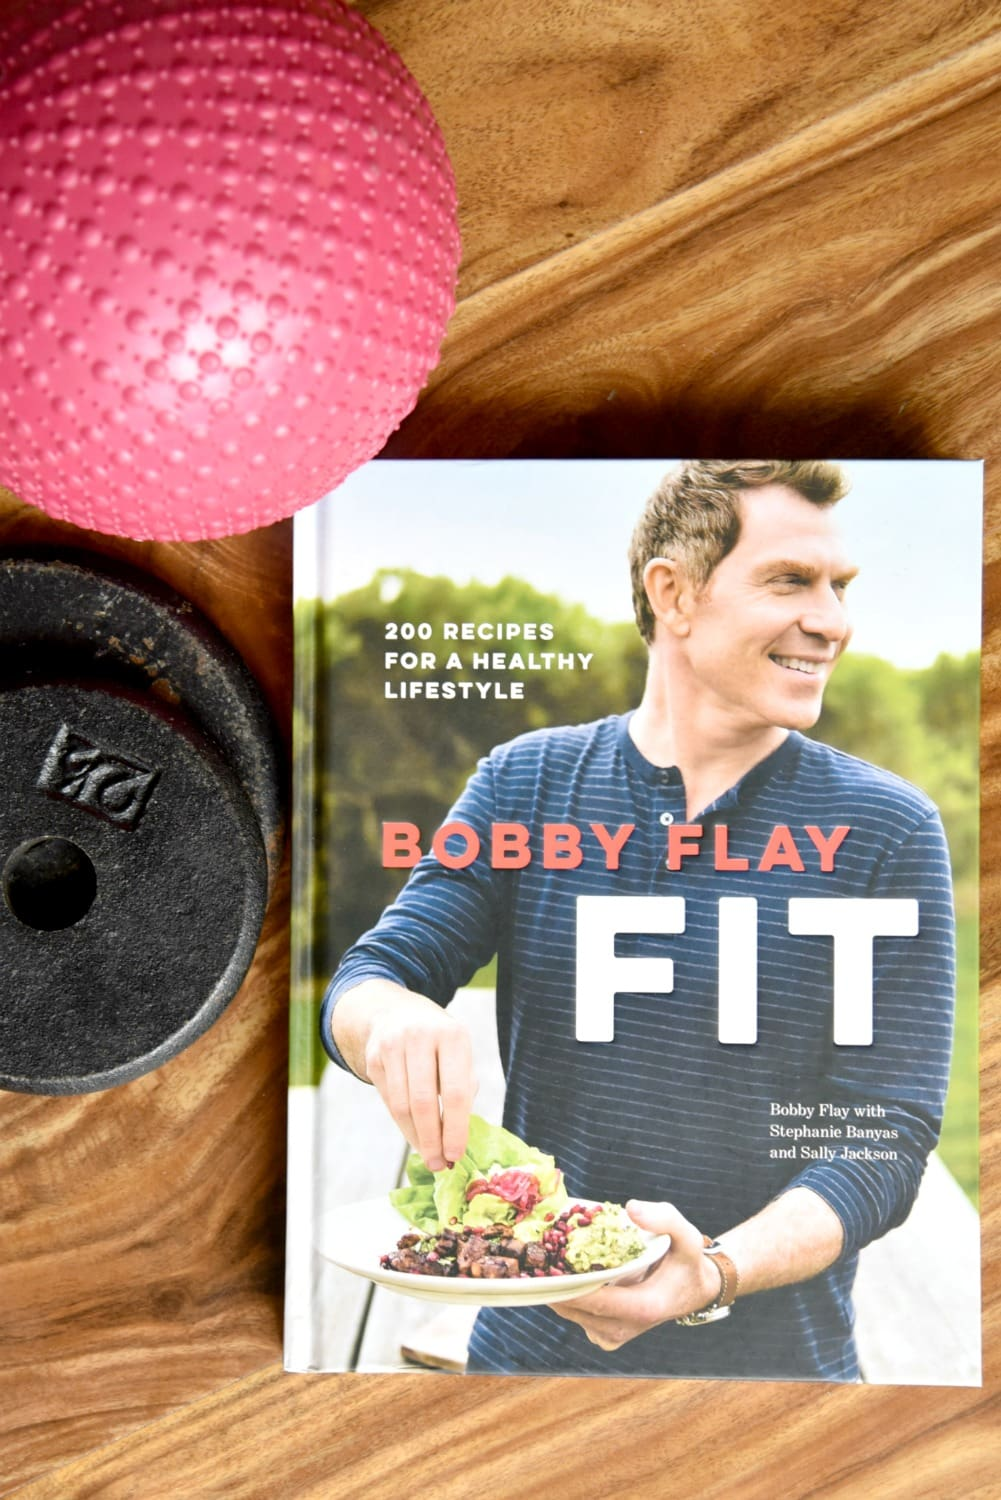 Getting Fit with Bobby Flay